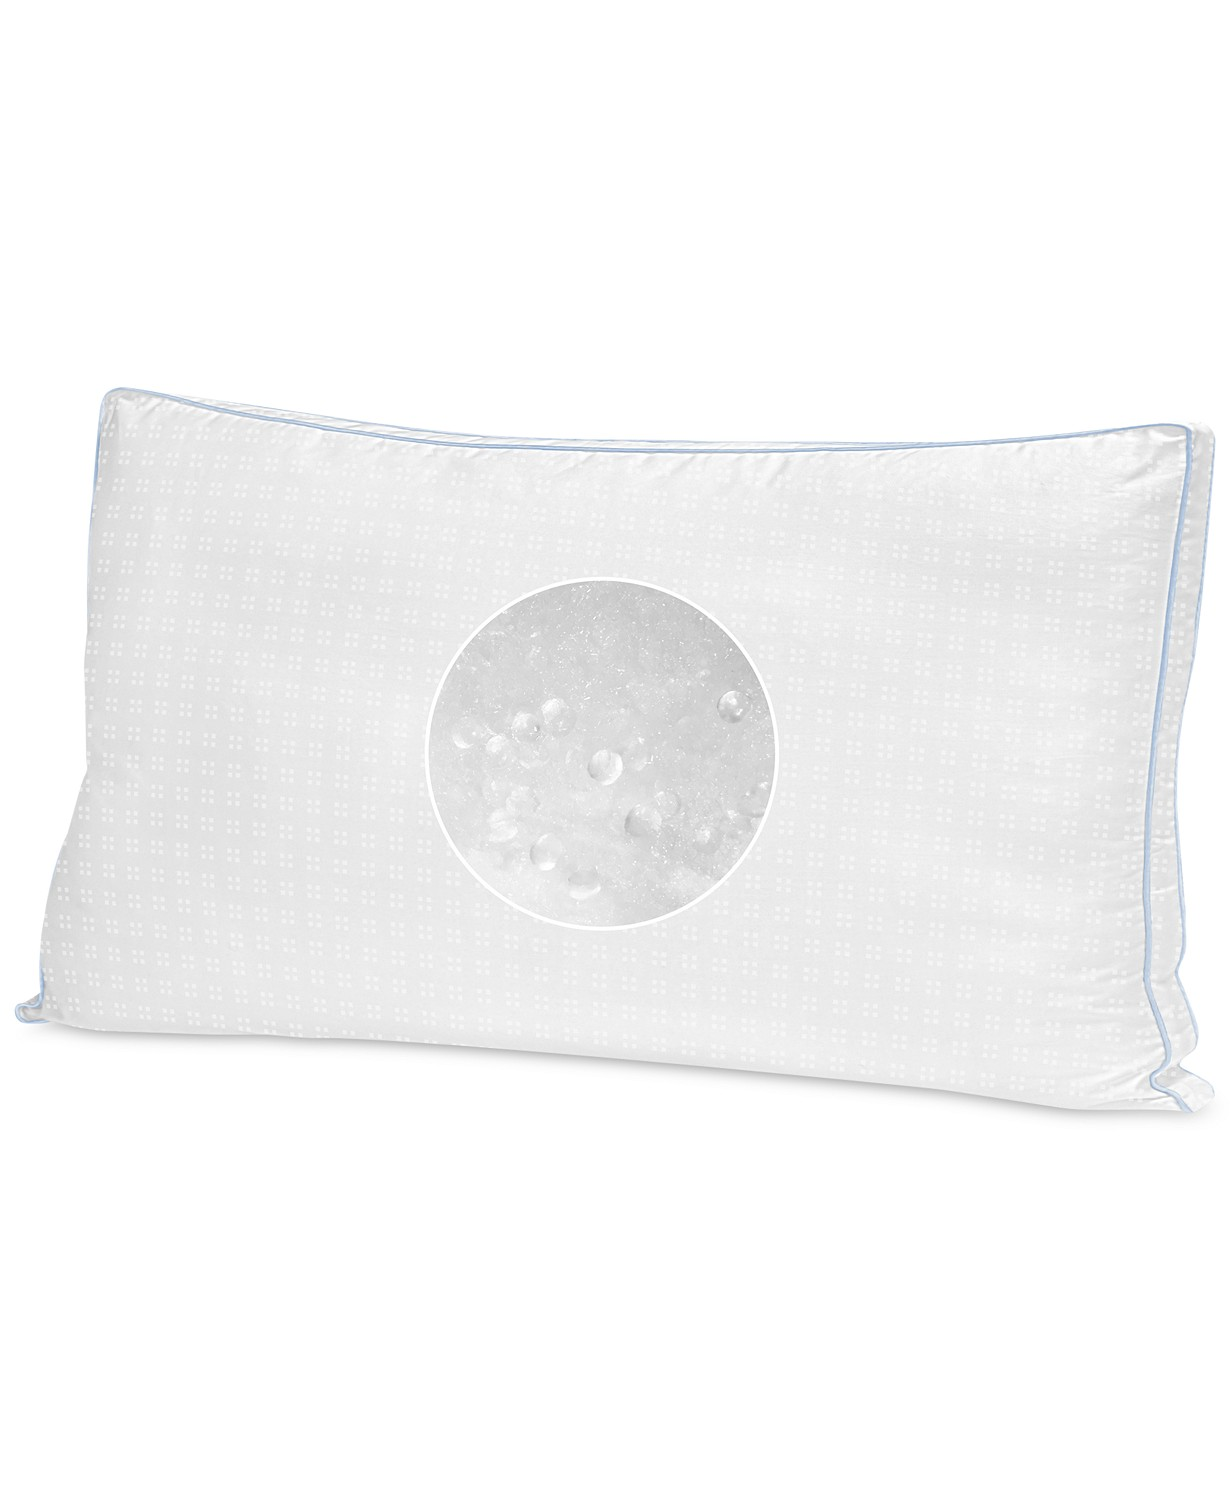 sensorgel cool fusion medium density king size bed pillow with cooling gel beads white walmart com